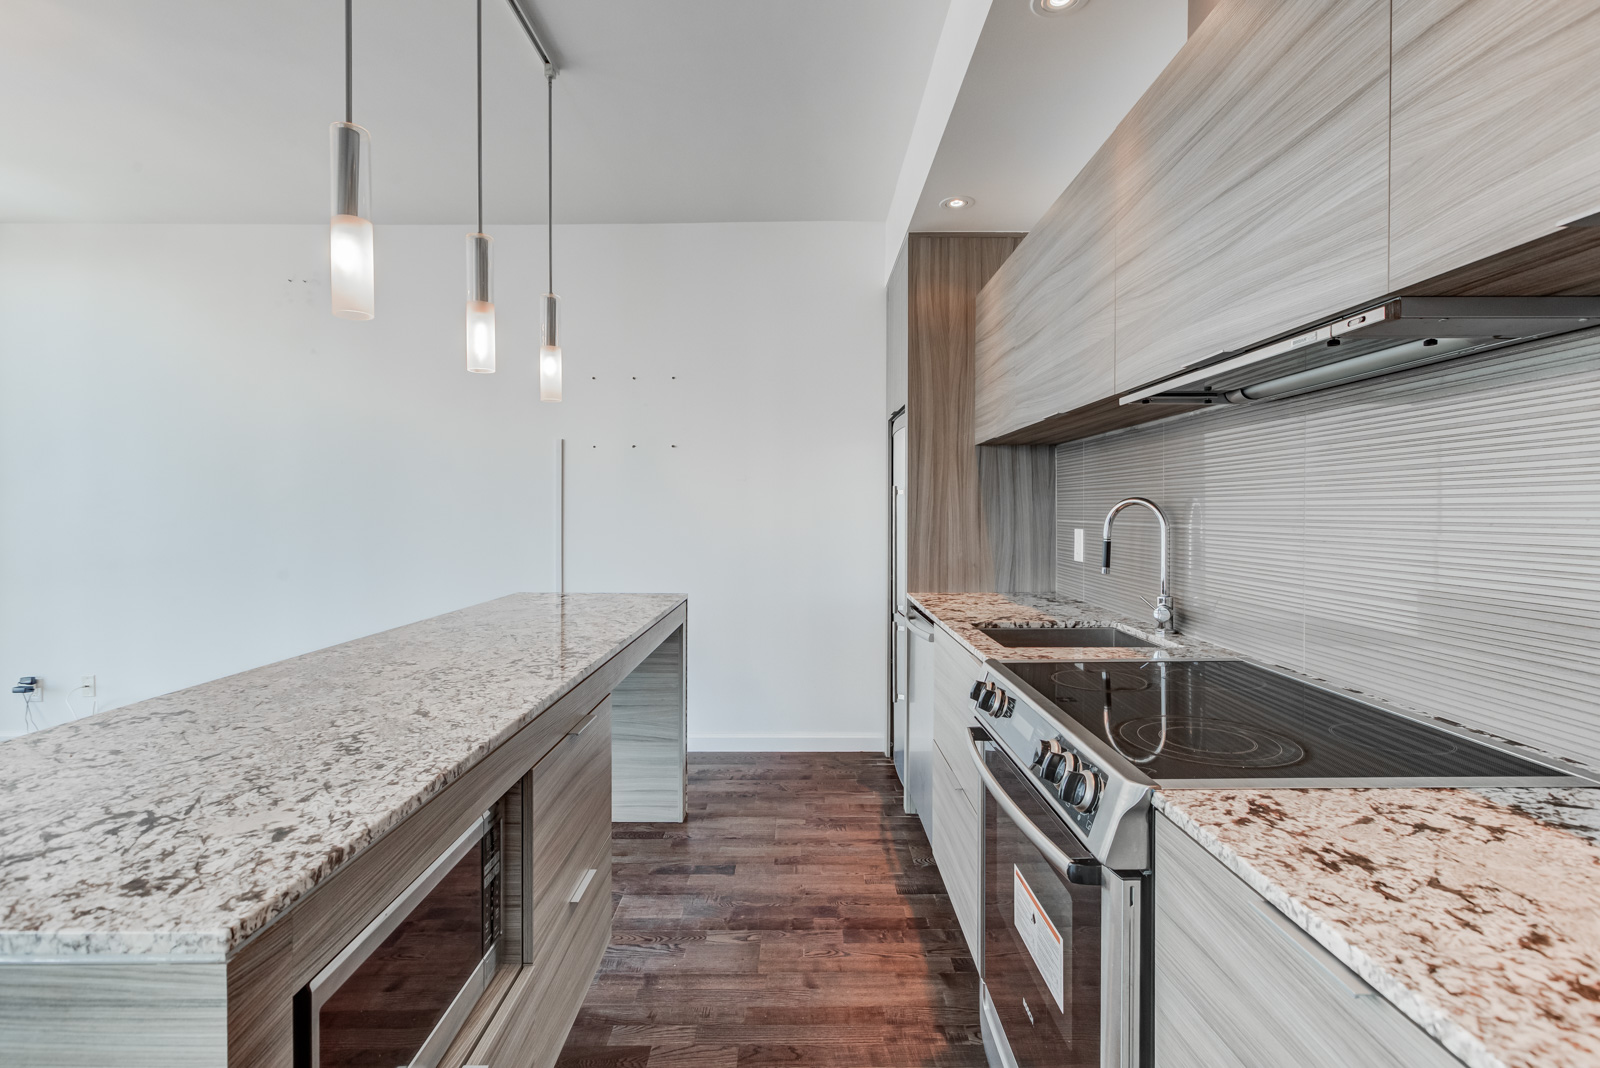 Heavily-textured kitchen with marble counters, laminate floors, stainless steel appliances, wooden cabinets and hanging lights.